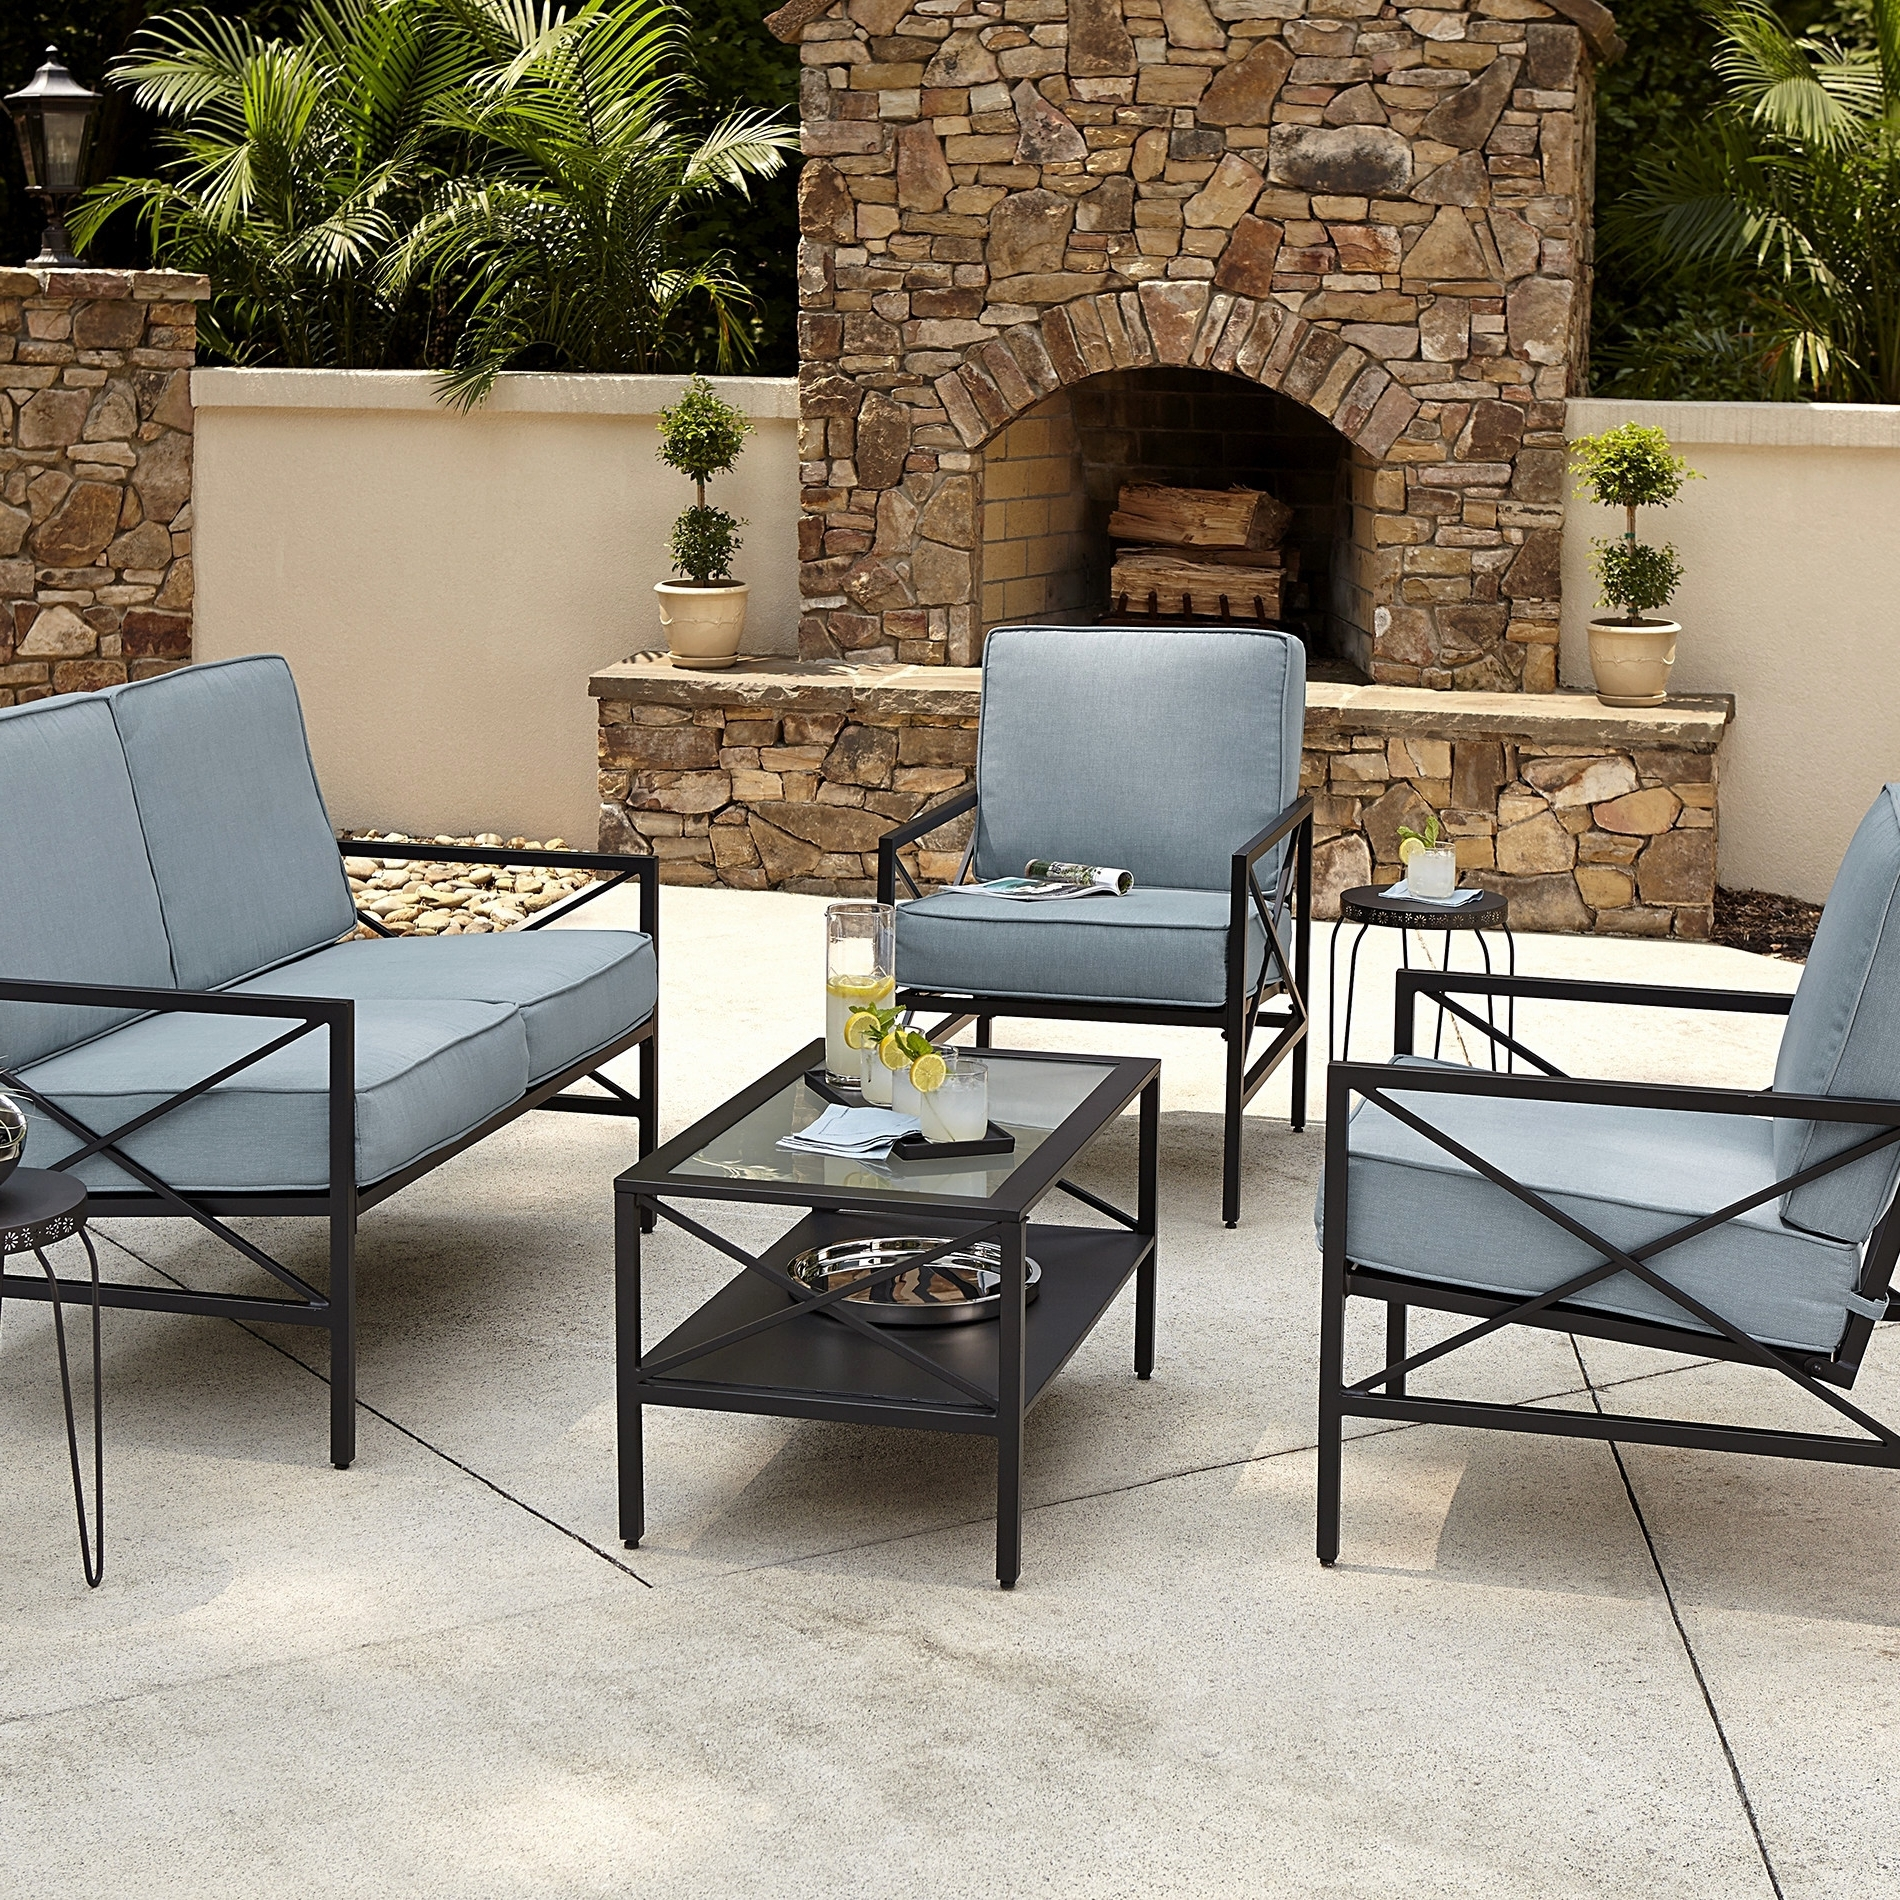 Benestuff Regarding 2019 Martha Stewart Conversation Patio Sets (View 2 of 20)